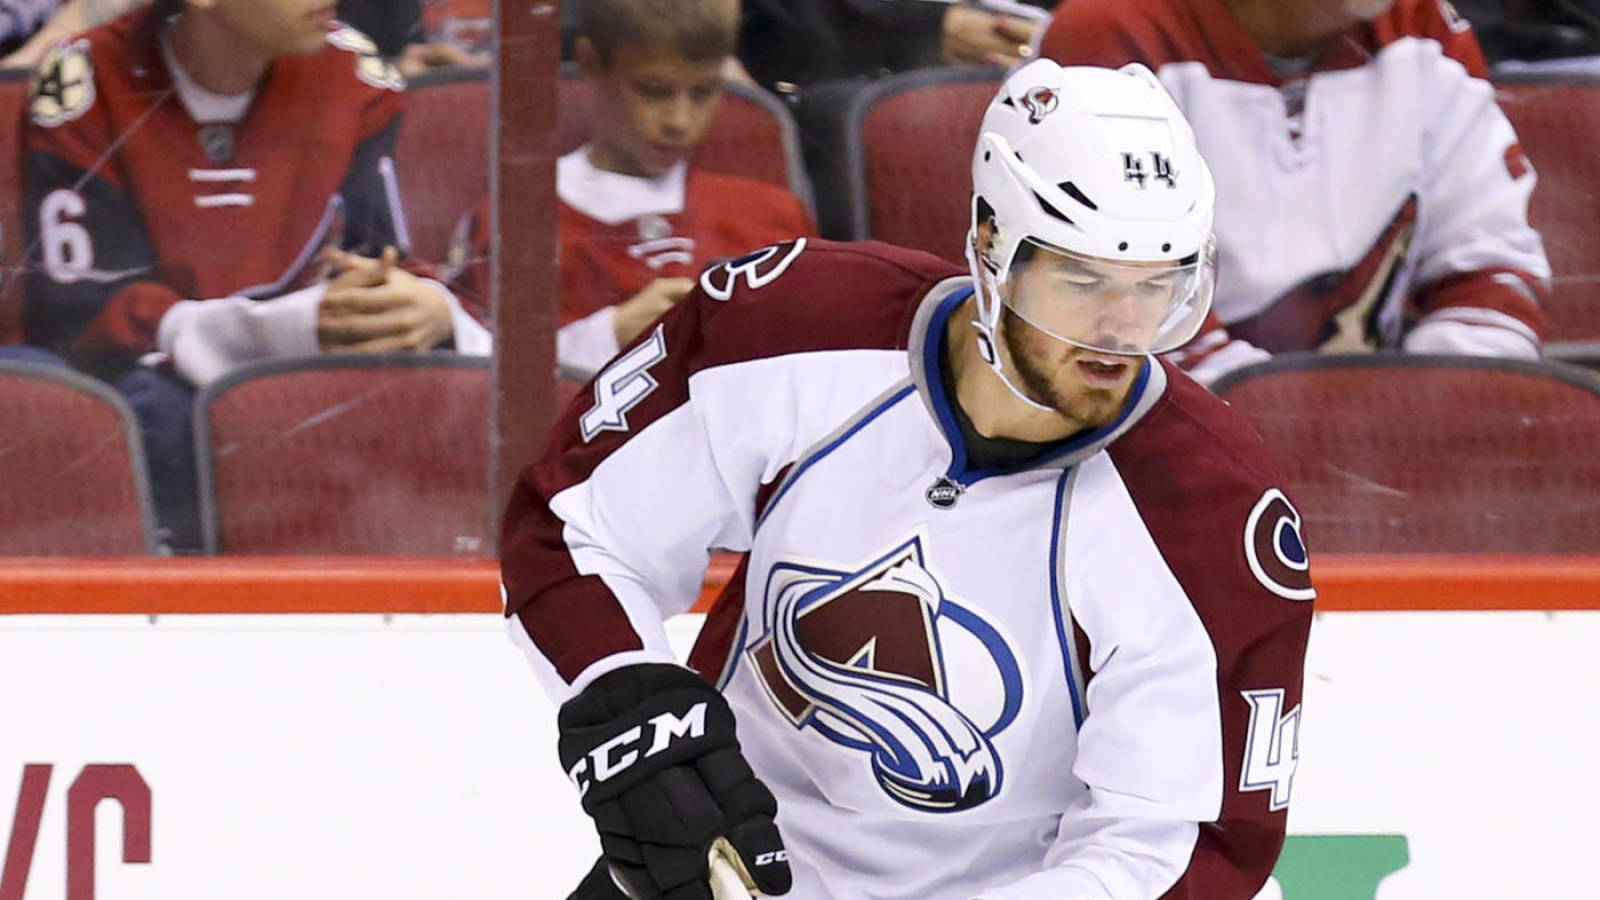 Carolina Hurricanes sign Eric Gelinas to one-year contract